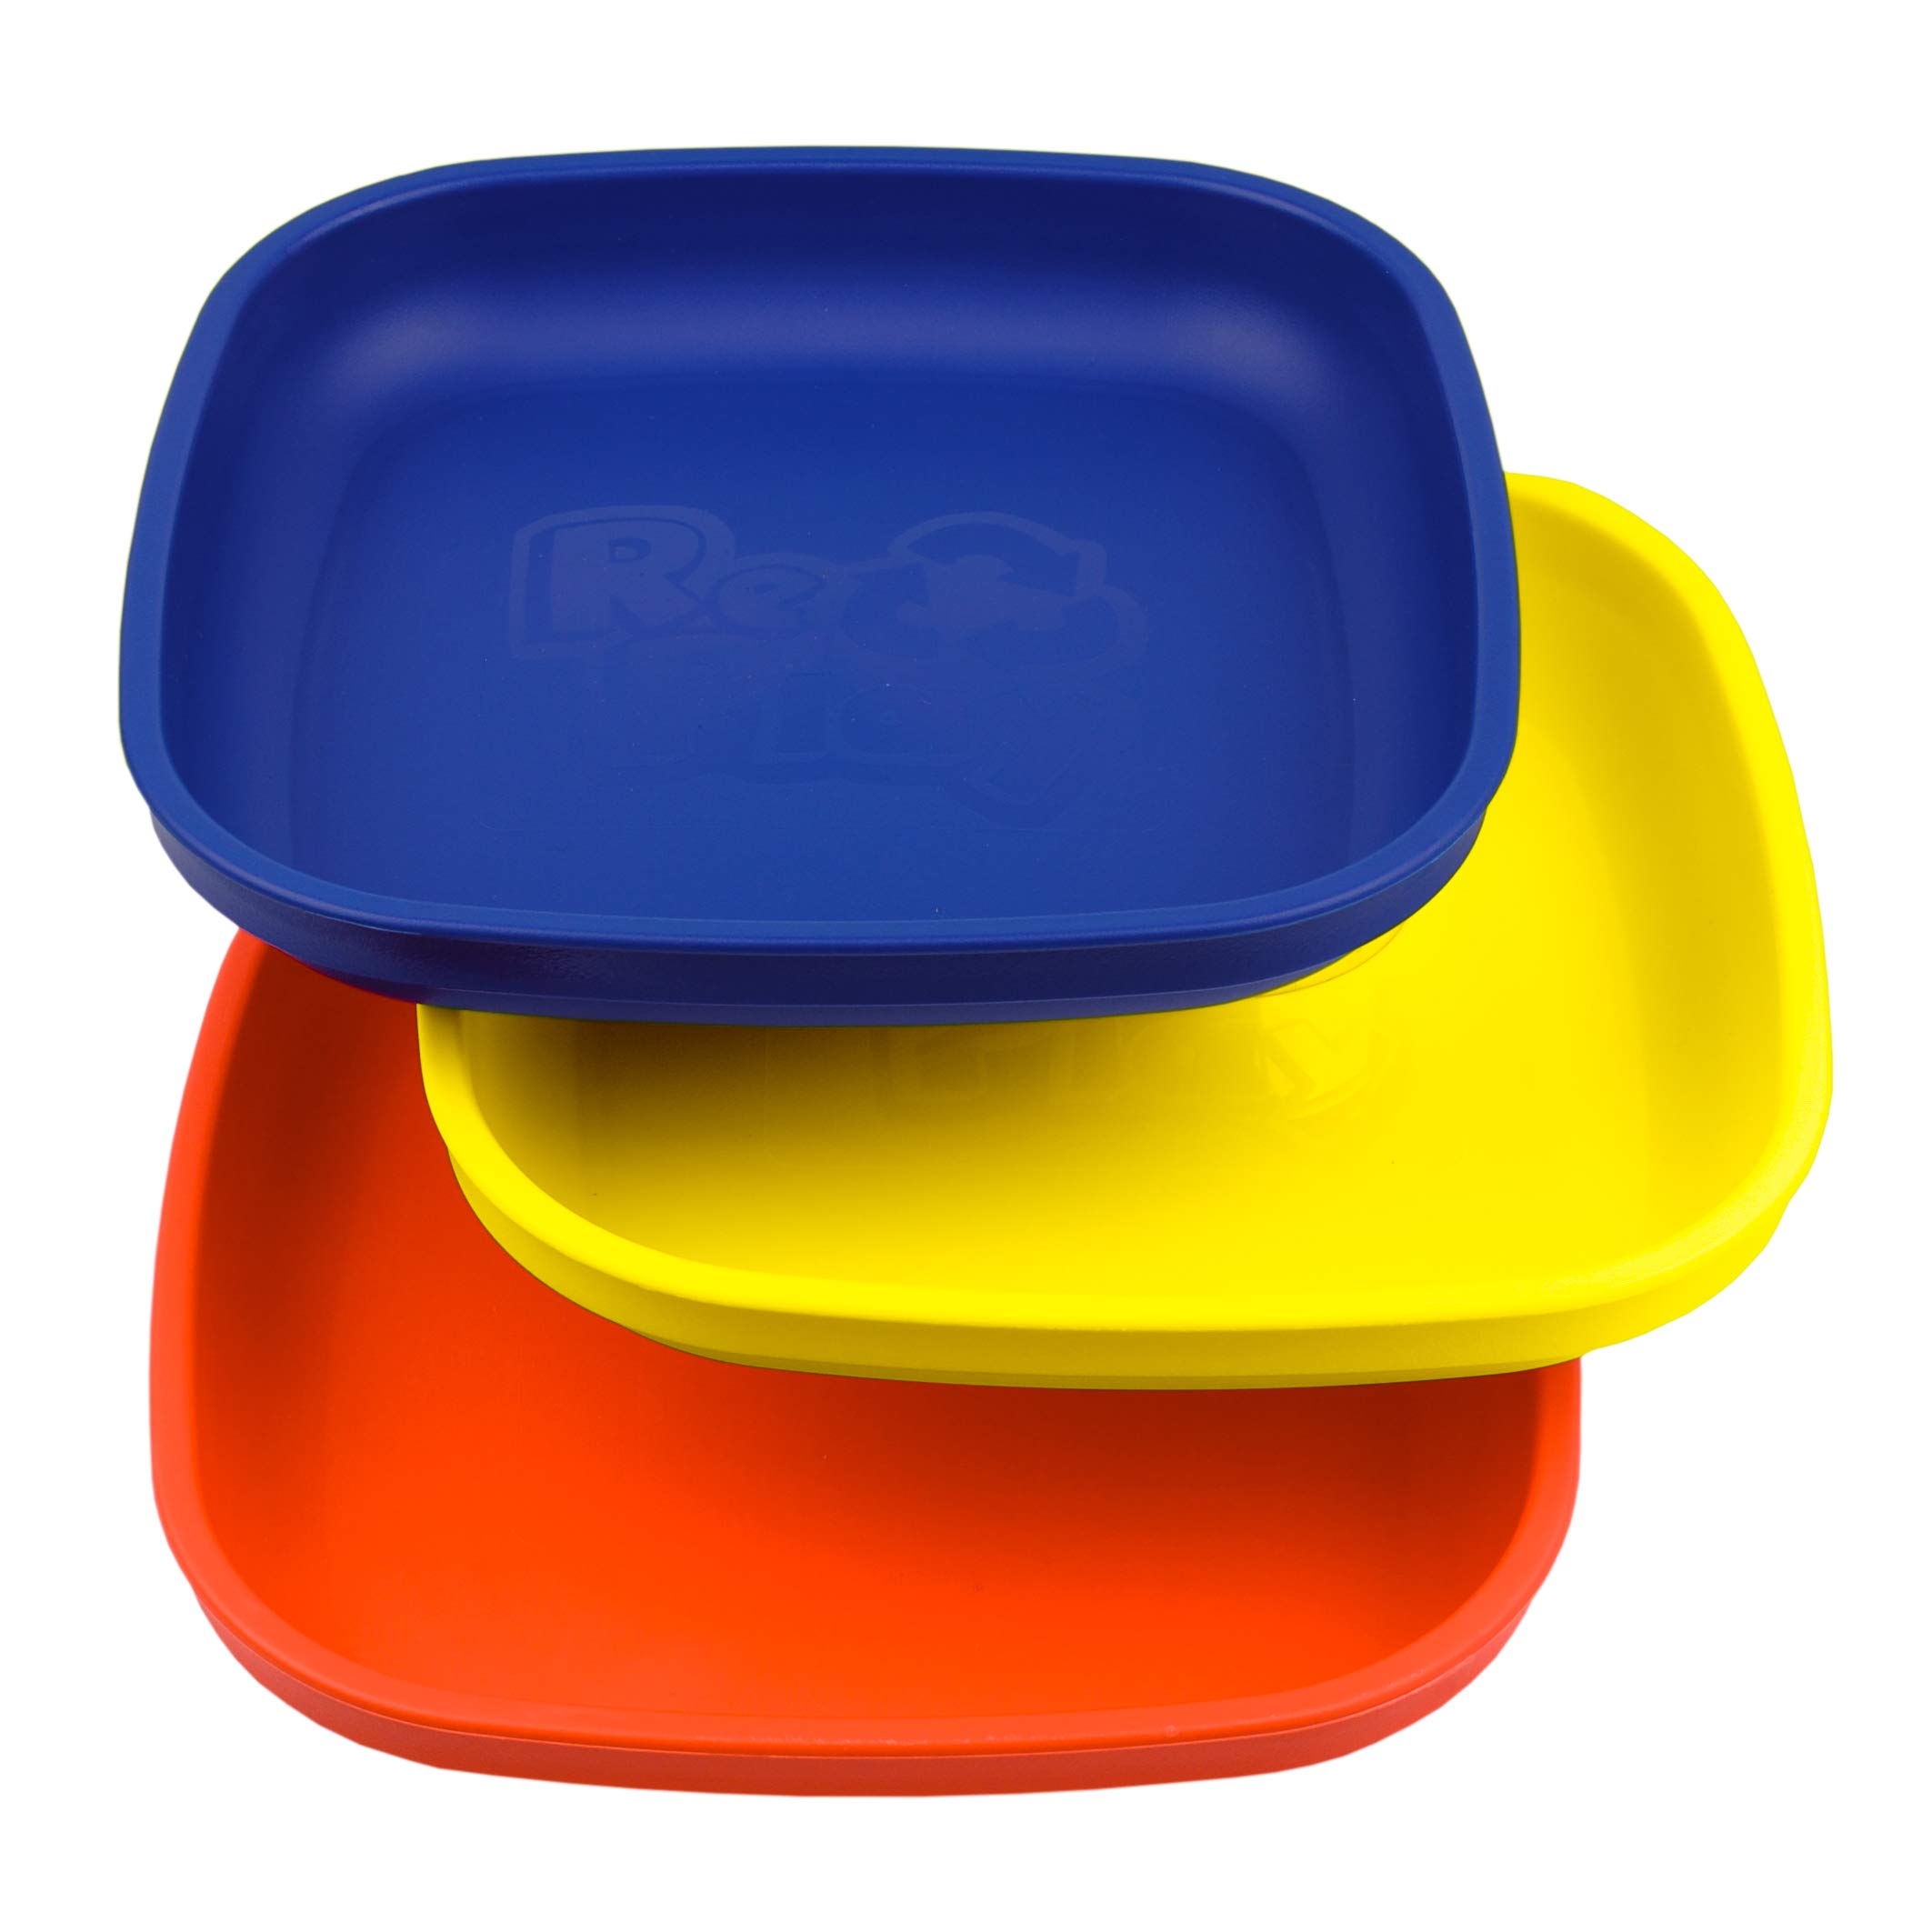 Re-Play Made in USA 3pk Plates with Deep Sides for Easy Baby, Toddler, Child Feeding - Red, Yellow, Navy (Primary)